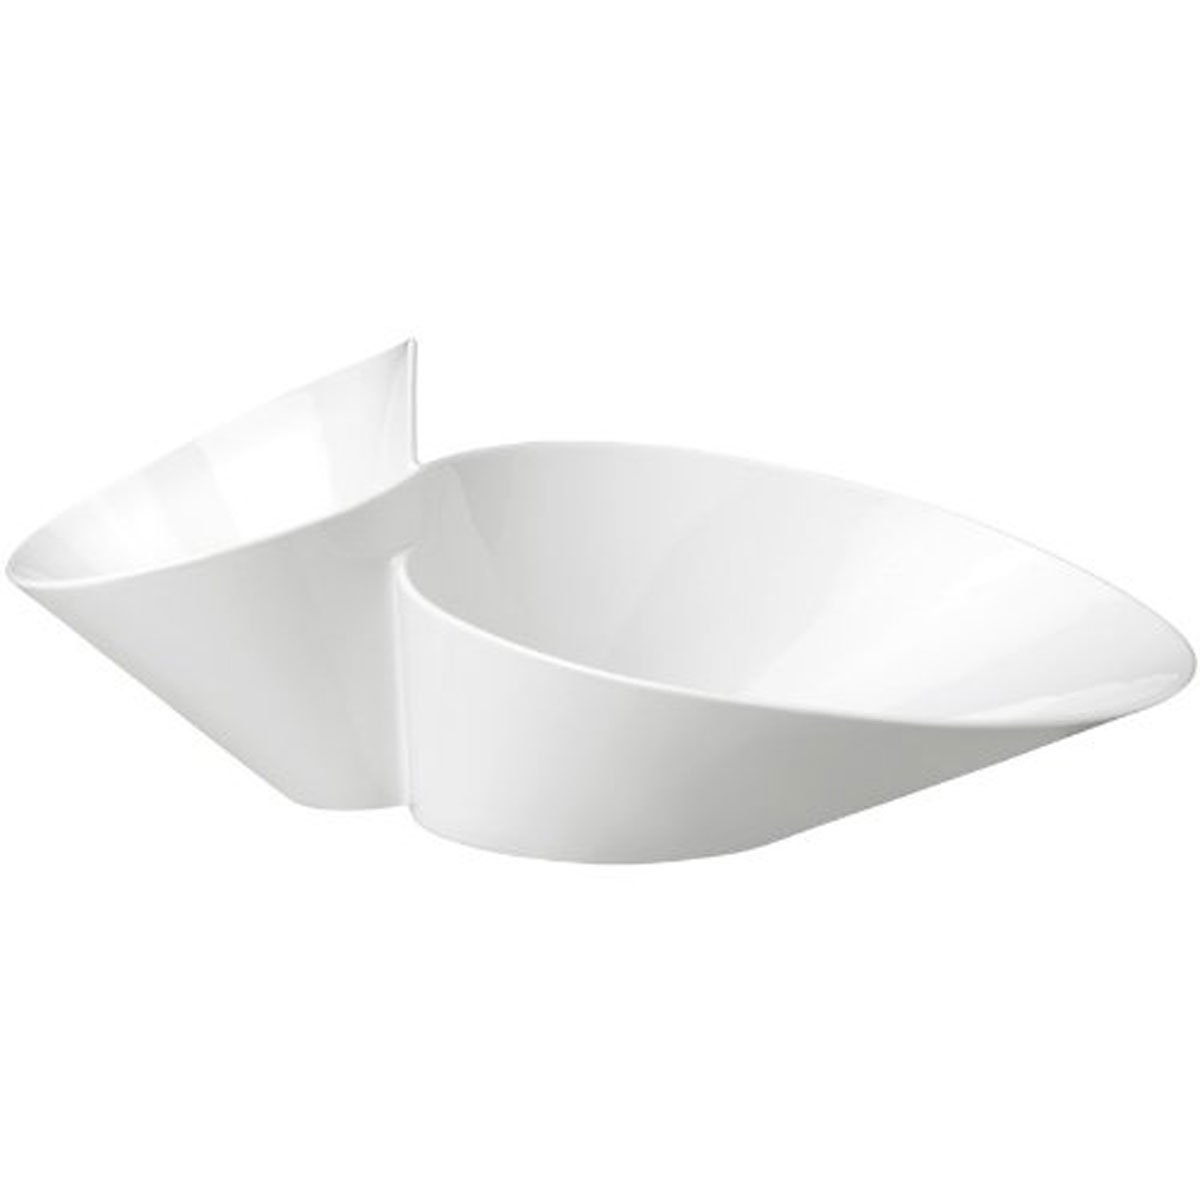 New Wave Chip and Dip Serving Bowl by Villeroy & Boch - 19.25 Inches